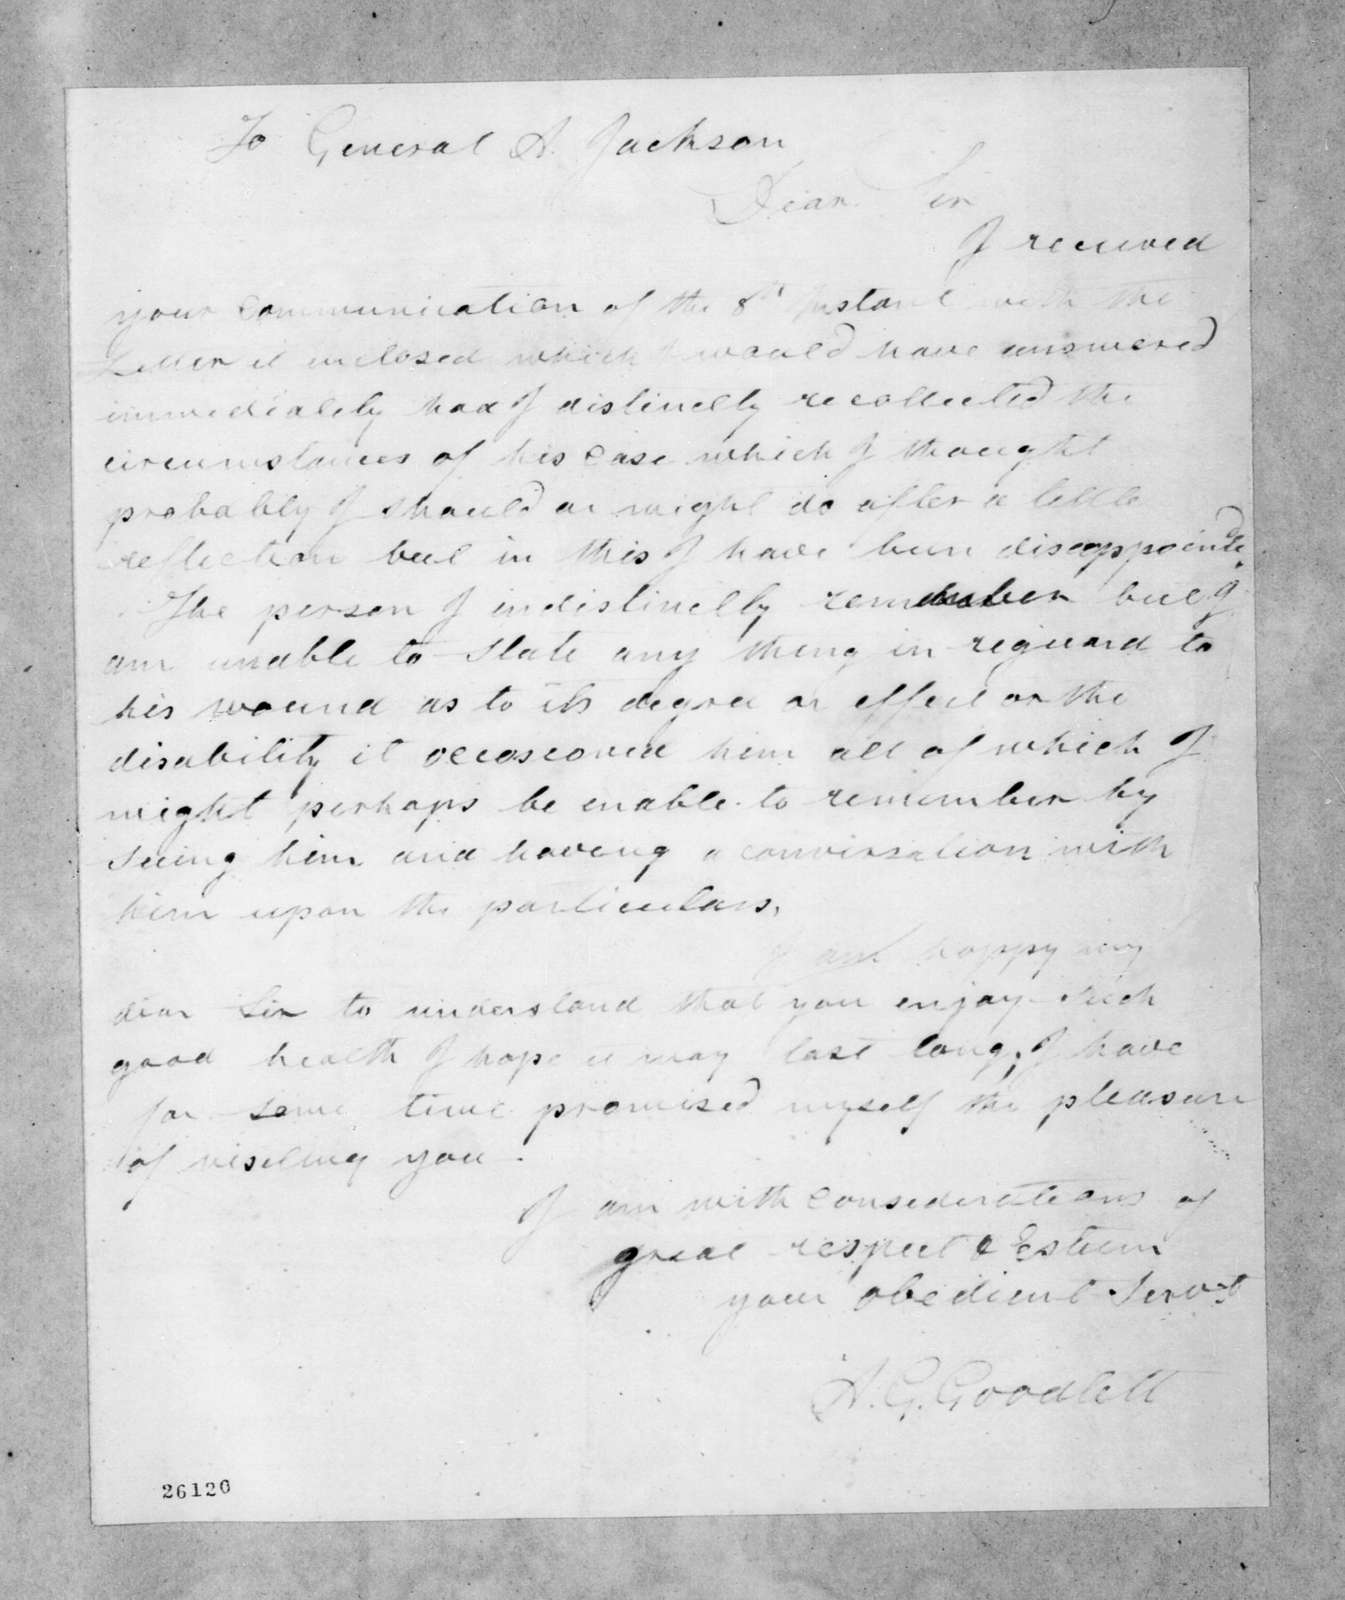 A. G. Goodlett to Andrew Jackson